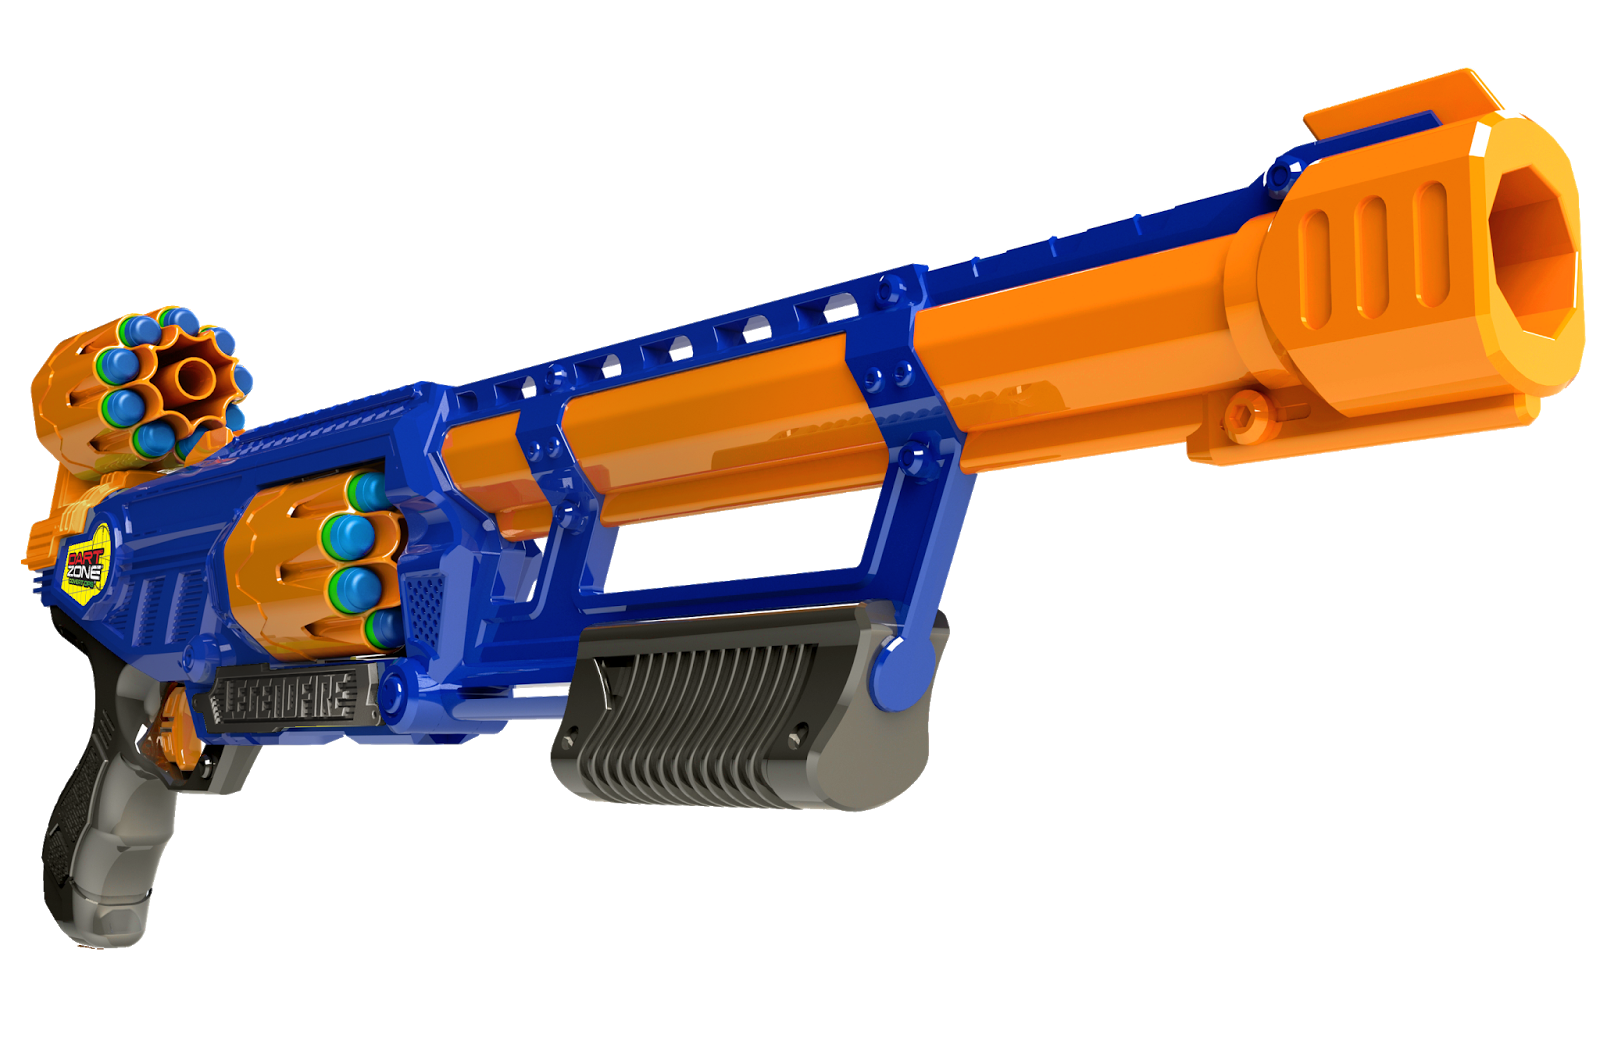 50 clip nerf dart. Bay area zone products